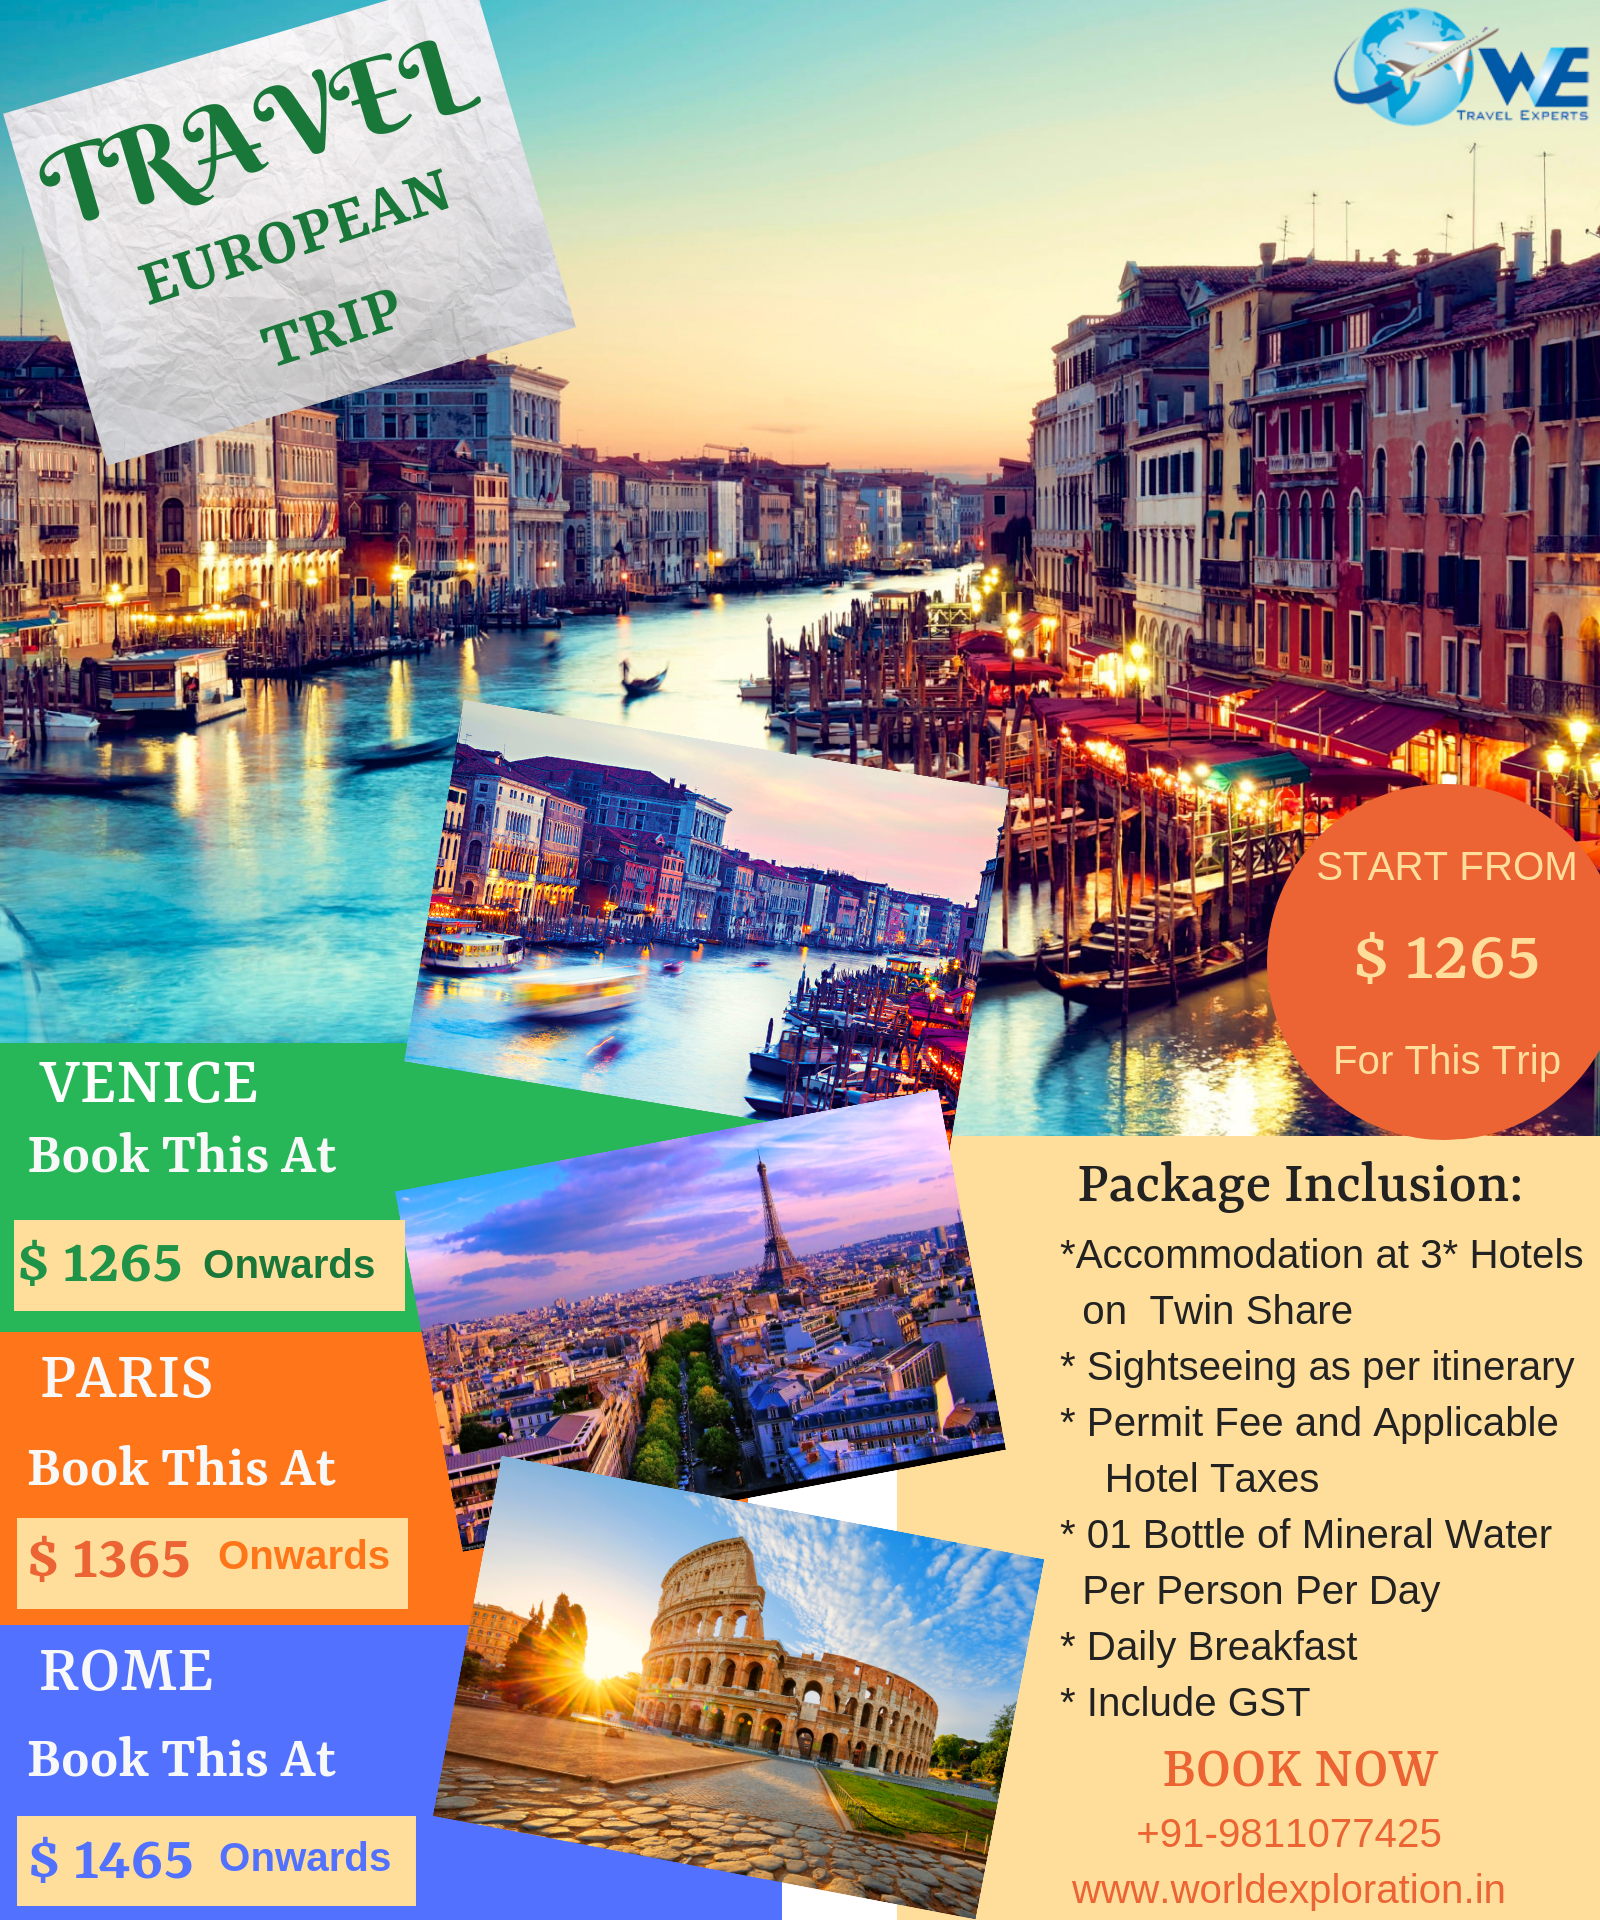 European Trip Is A University Town Between #Italy, #France